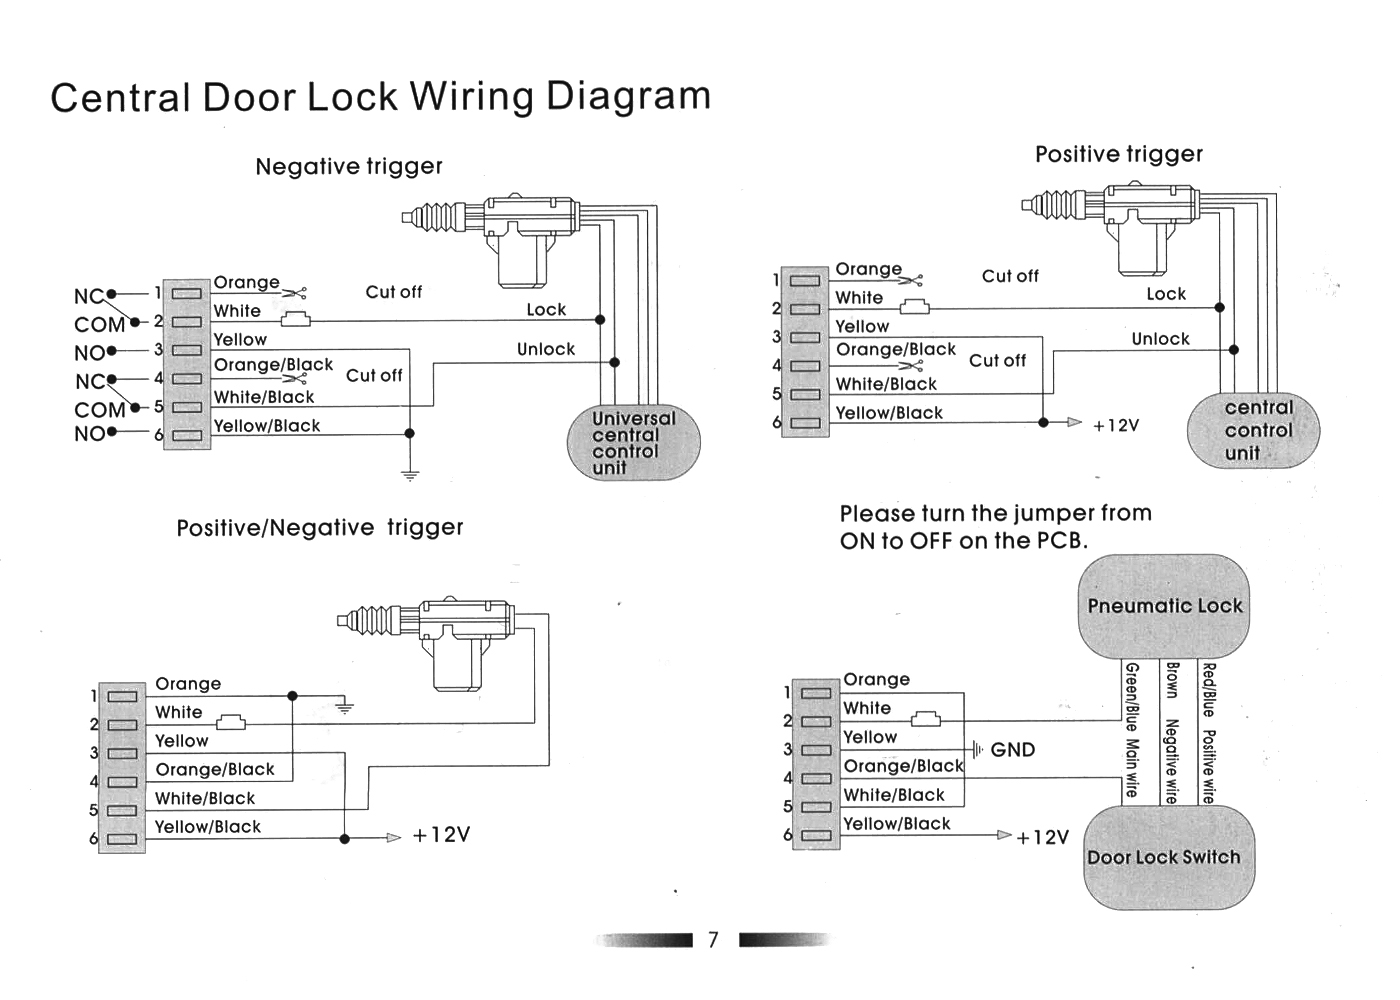 spy central locking wiring diagram club323f • view topic - alarm installation